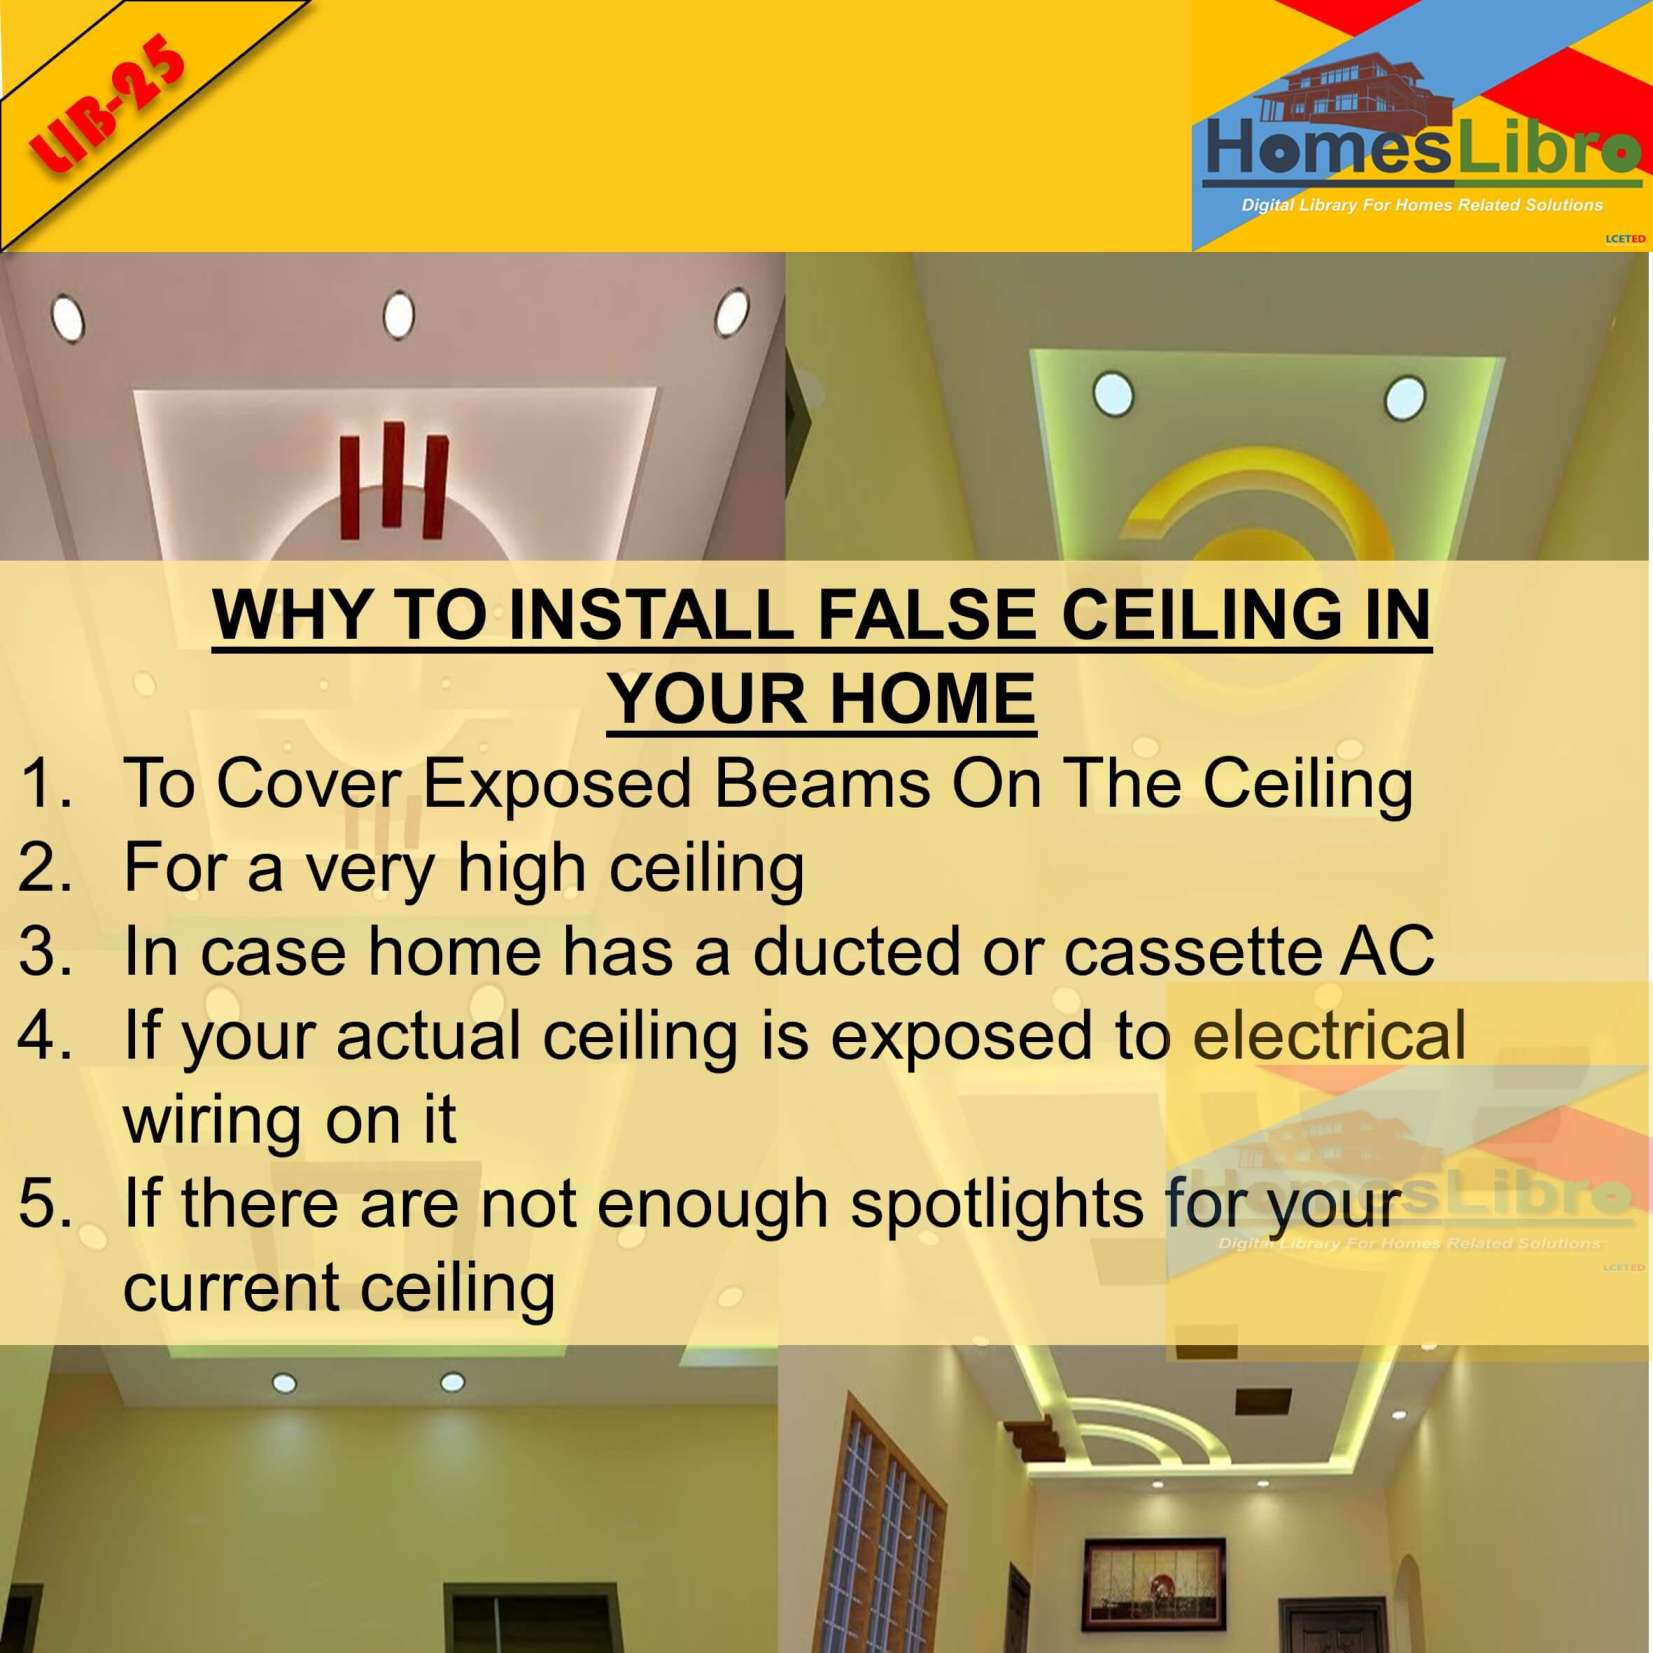 WHY SHOULD INSTALL FALSE CEILING IN YOUR HOME